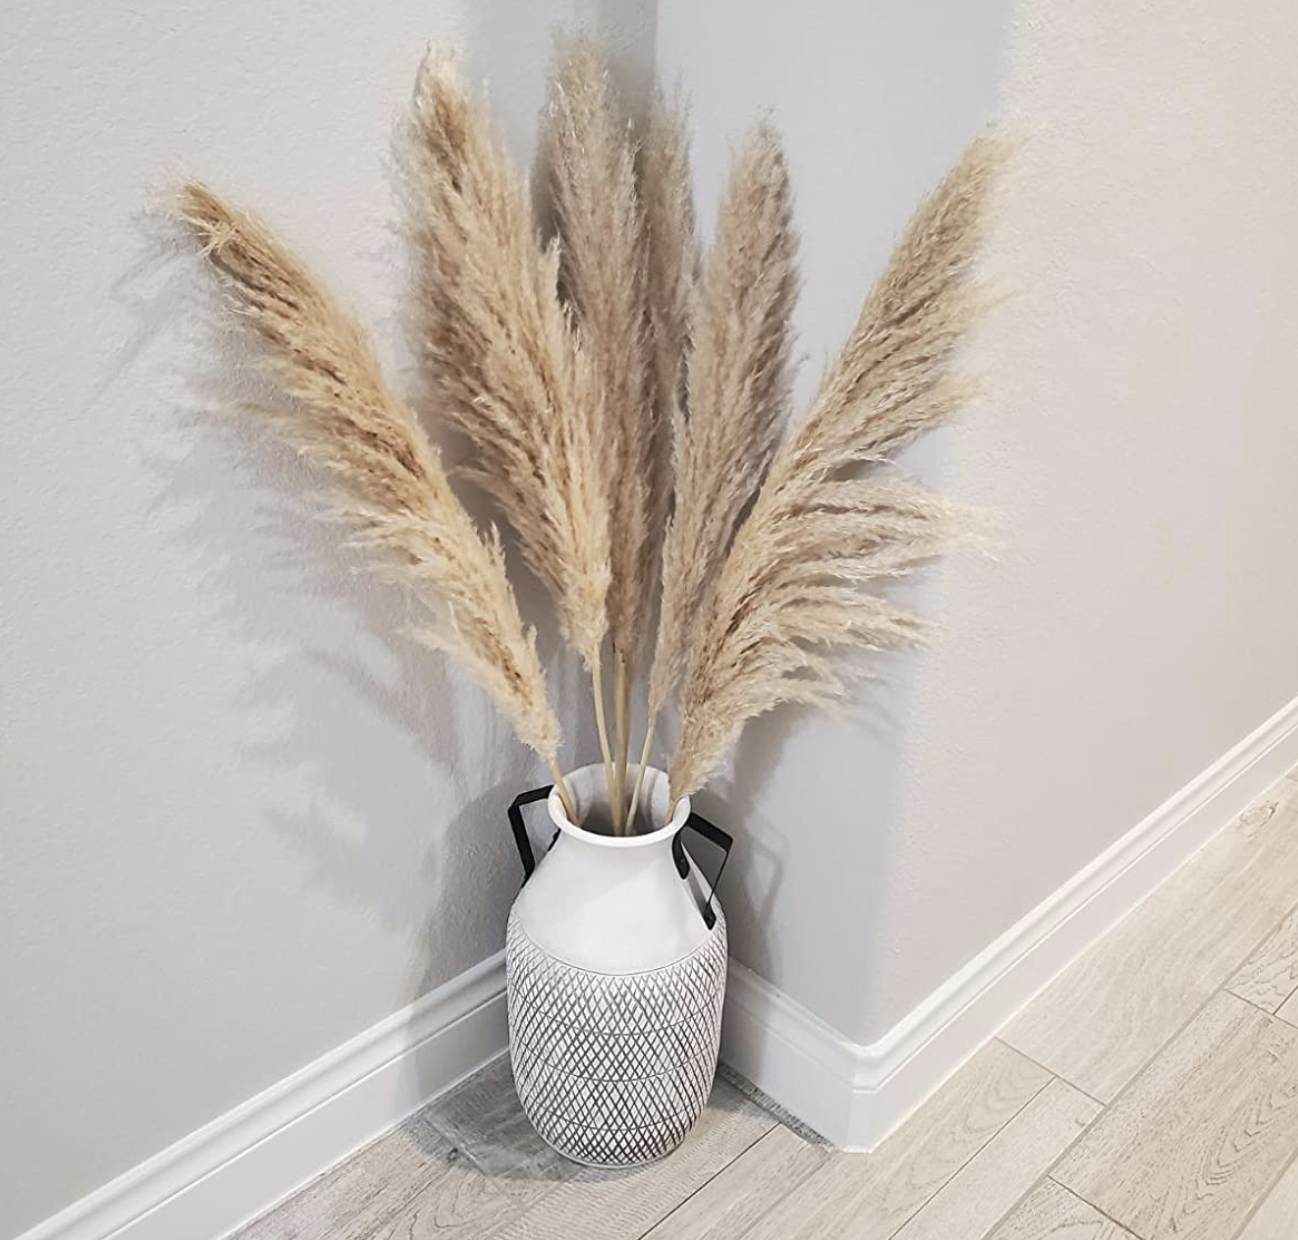 Reviewer photo of Pampas grass in vase on floor